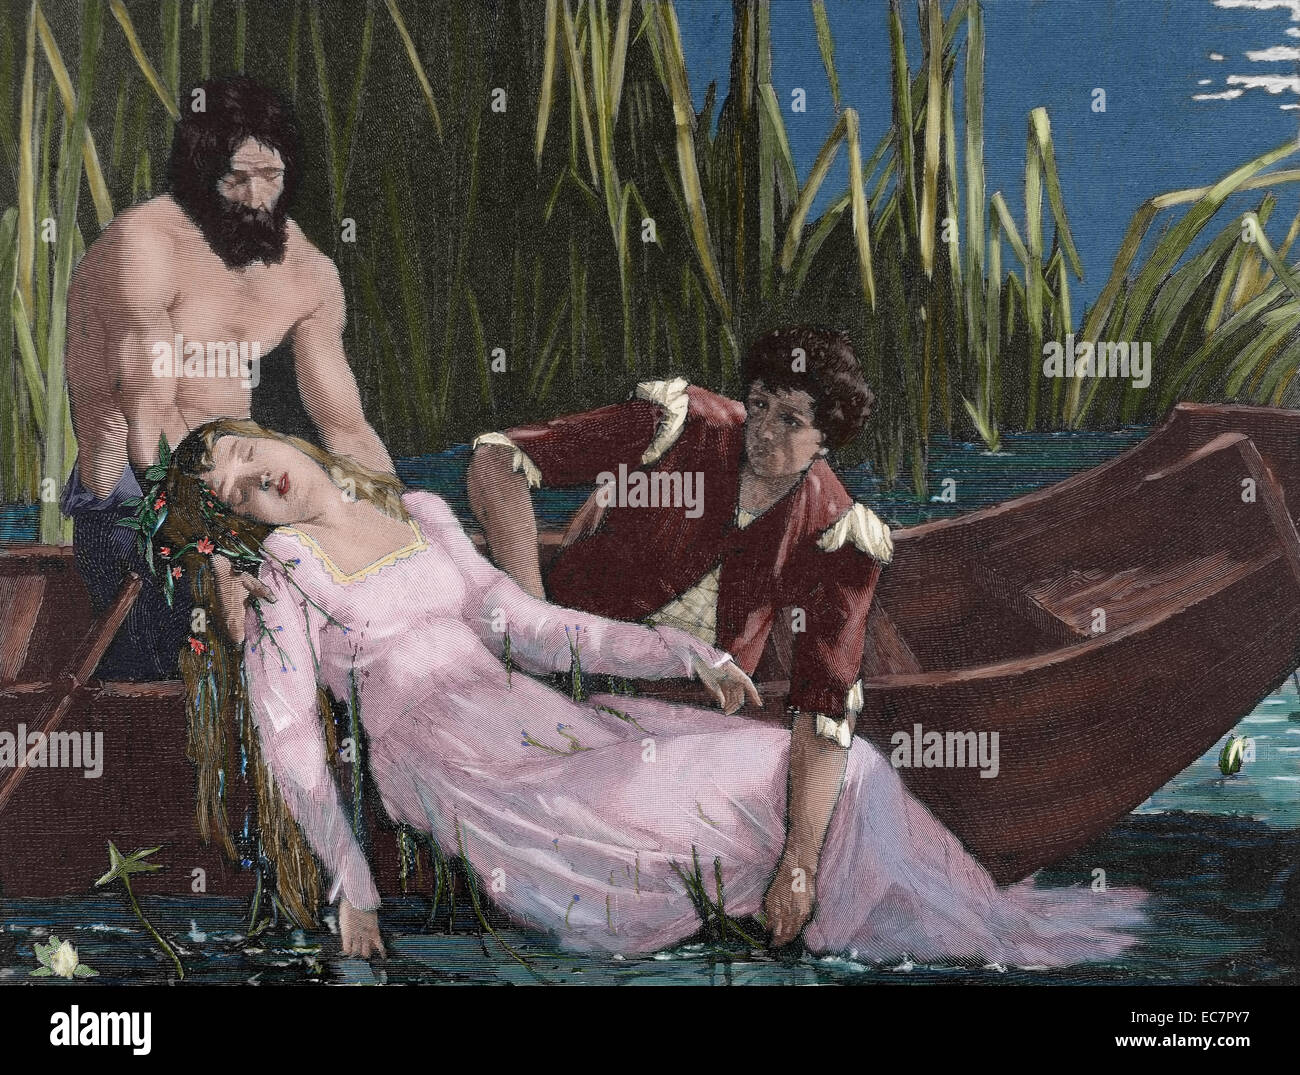 William Shakespeare (1564-1616). English writer. Hamlet. Death of Ophelia. Engraving, 19th century. Colored. - Stock Image